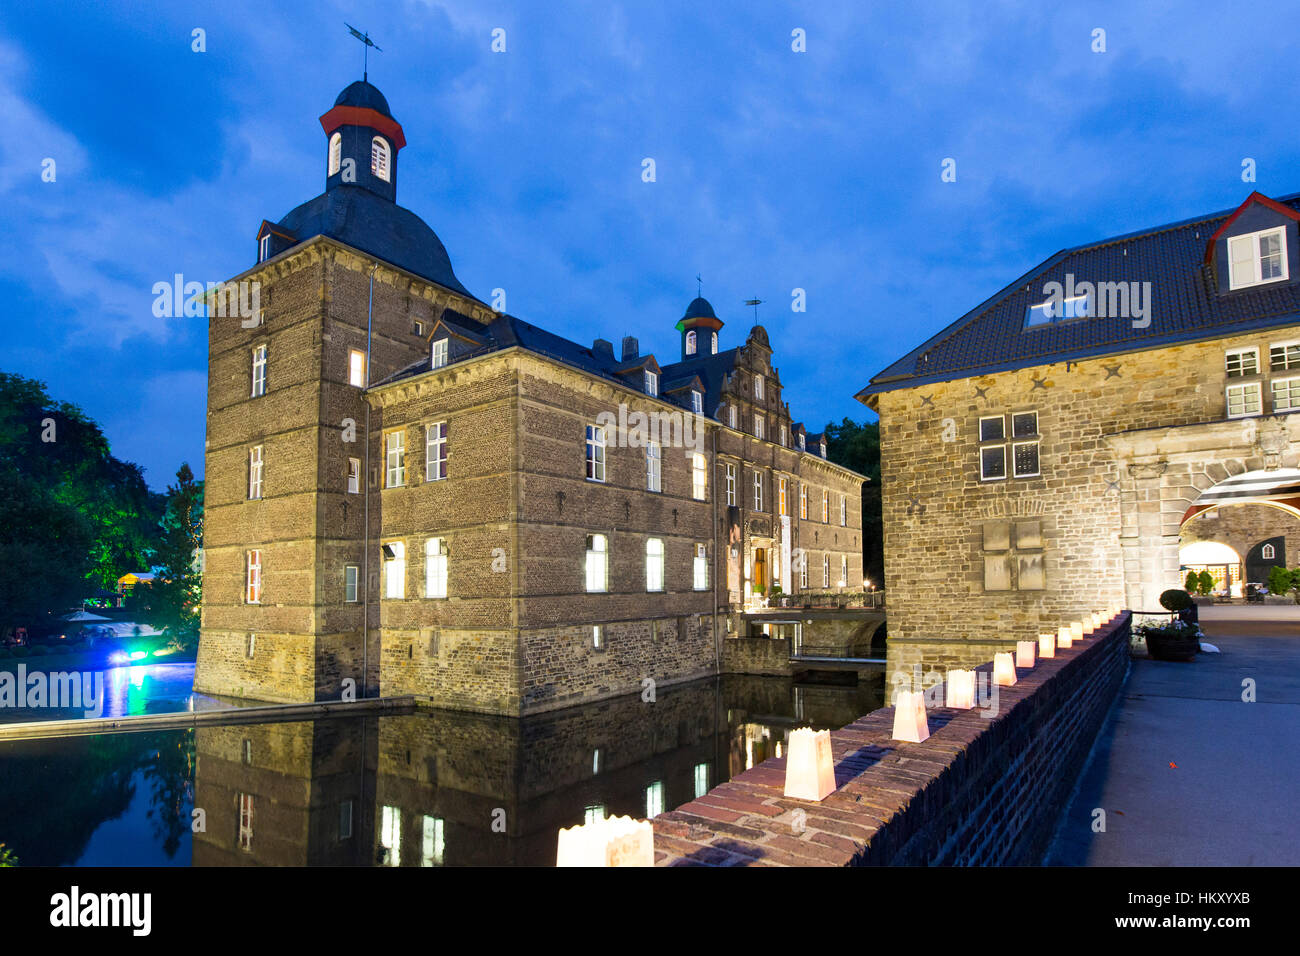 Castle Hugenpoet, Essen-Kettwig, hotel and restaurant, water castle, - Stock Image